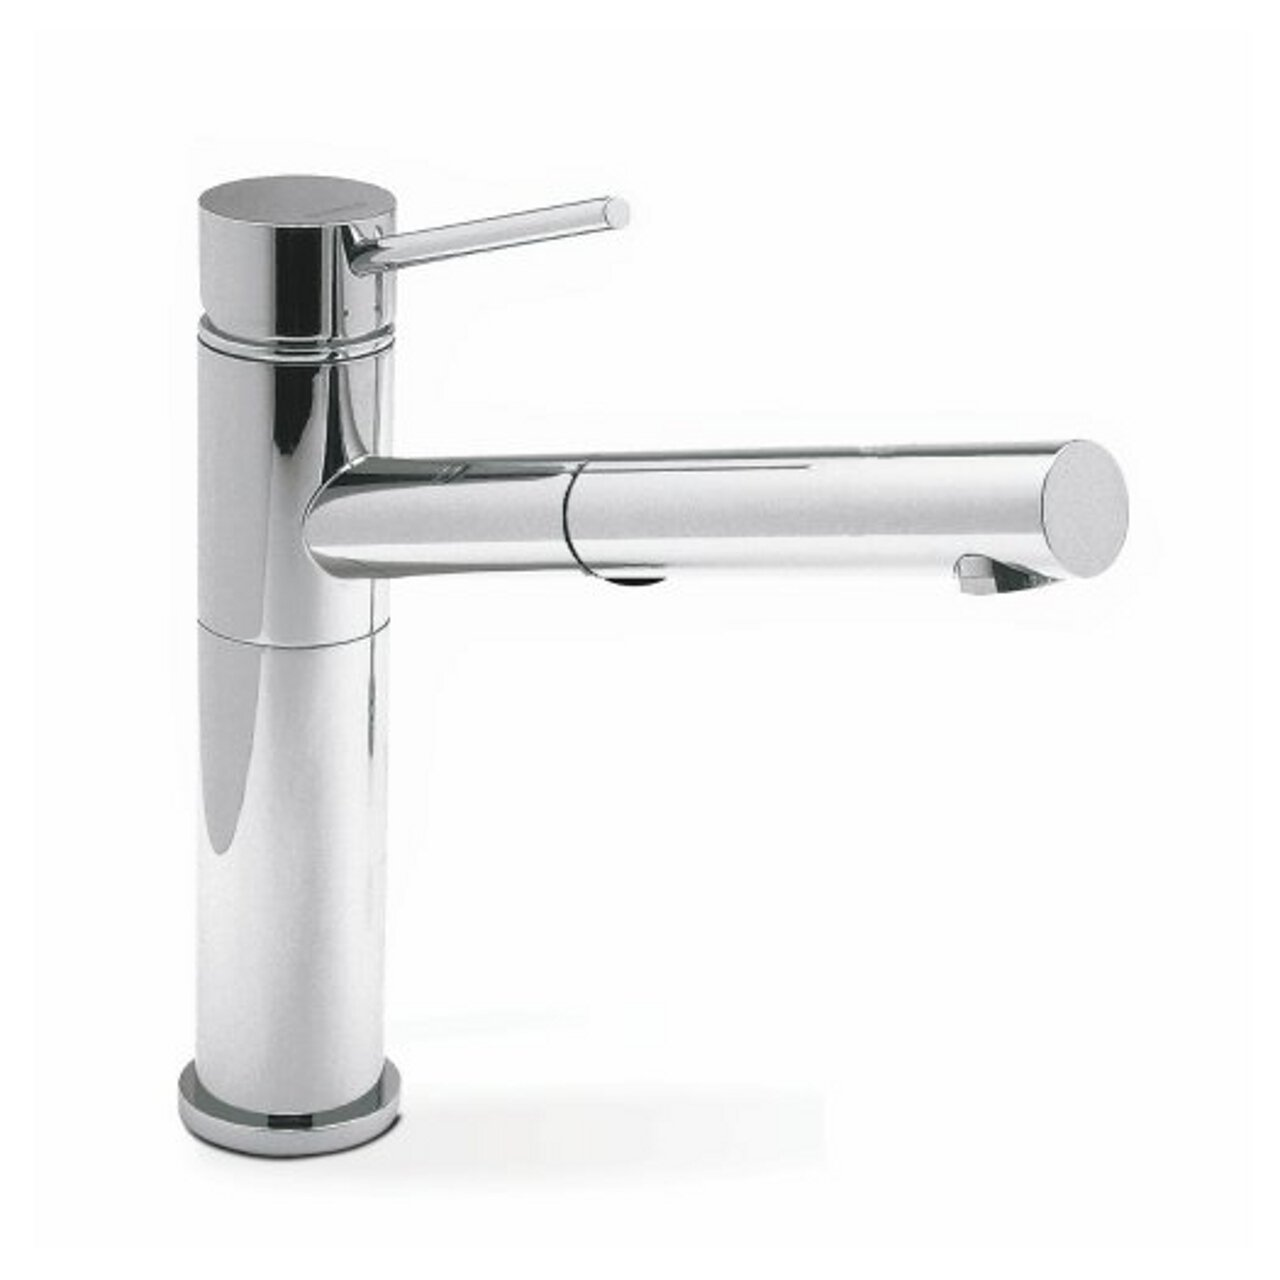 Blanco 441401 Alta Pullout With Dual Spray, Chrome   Touch On Kitchen Sink  Faucets   Amazon.com